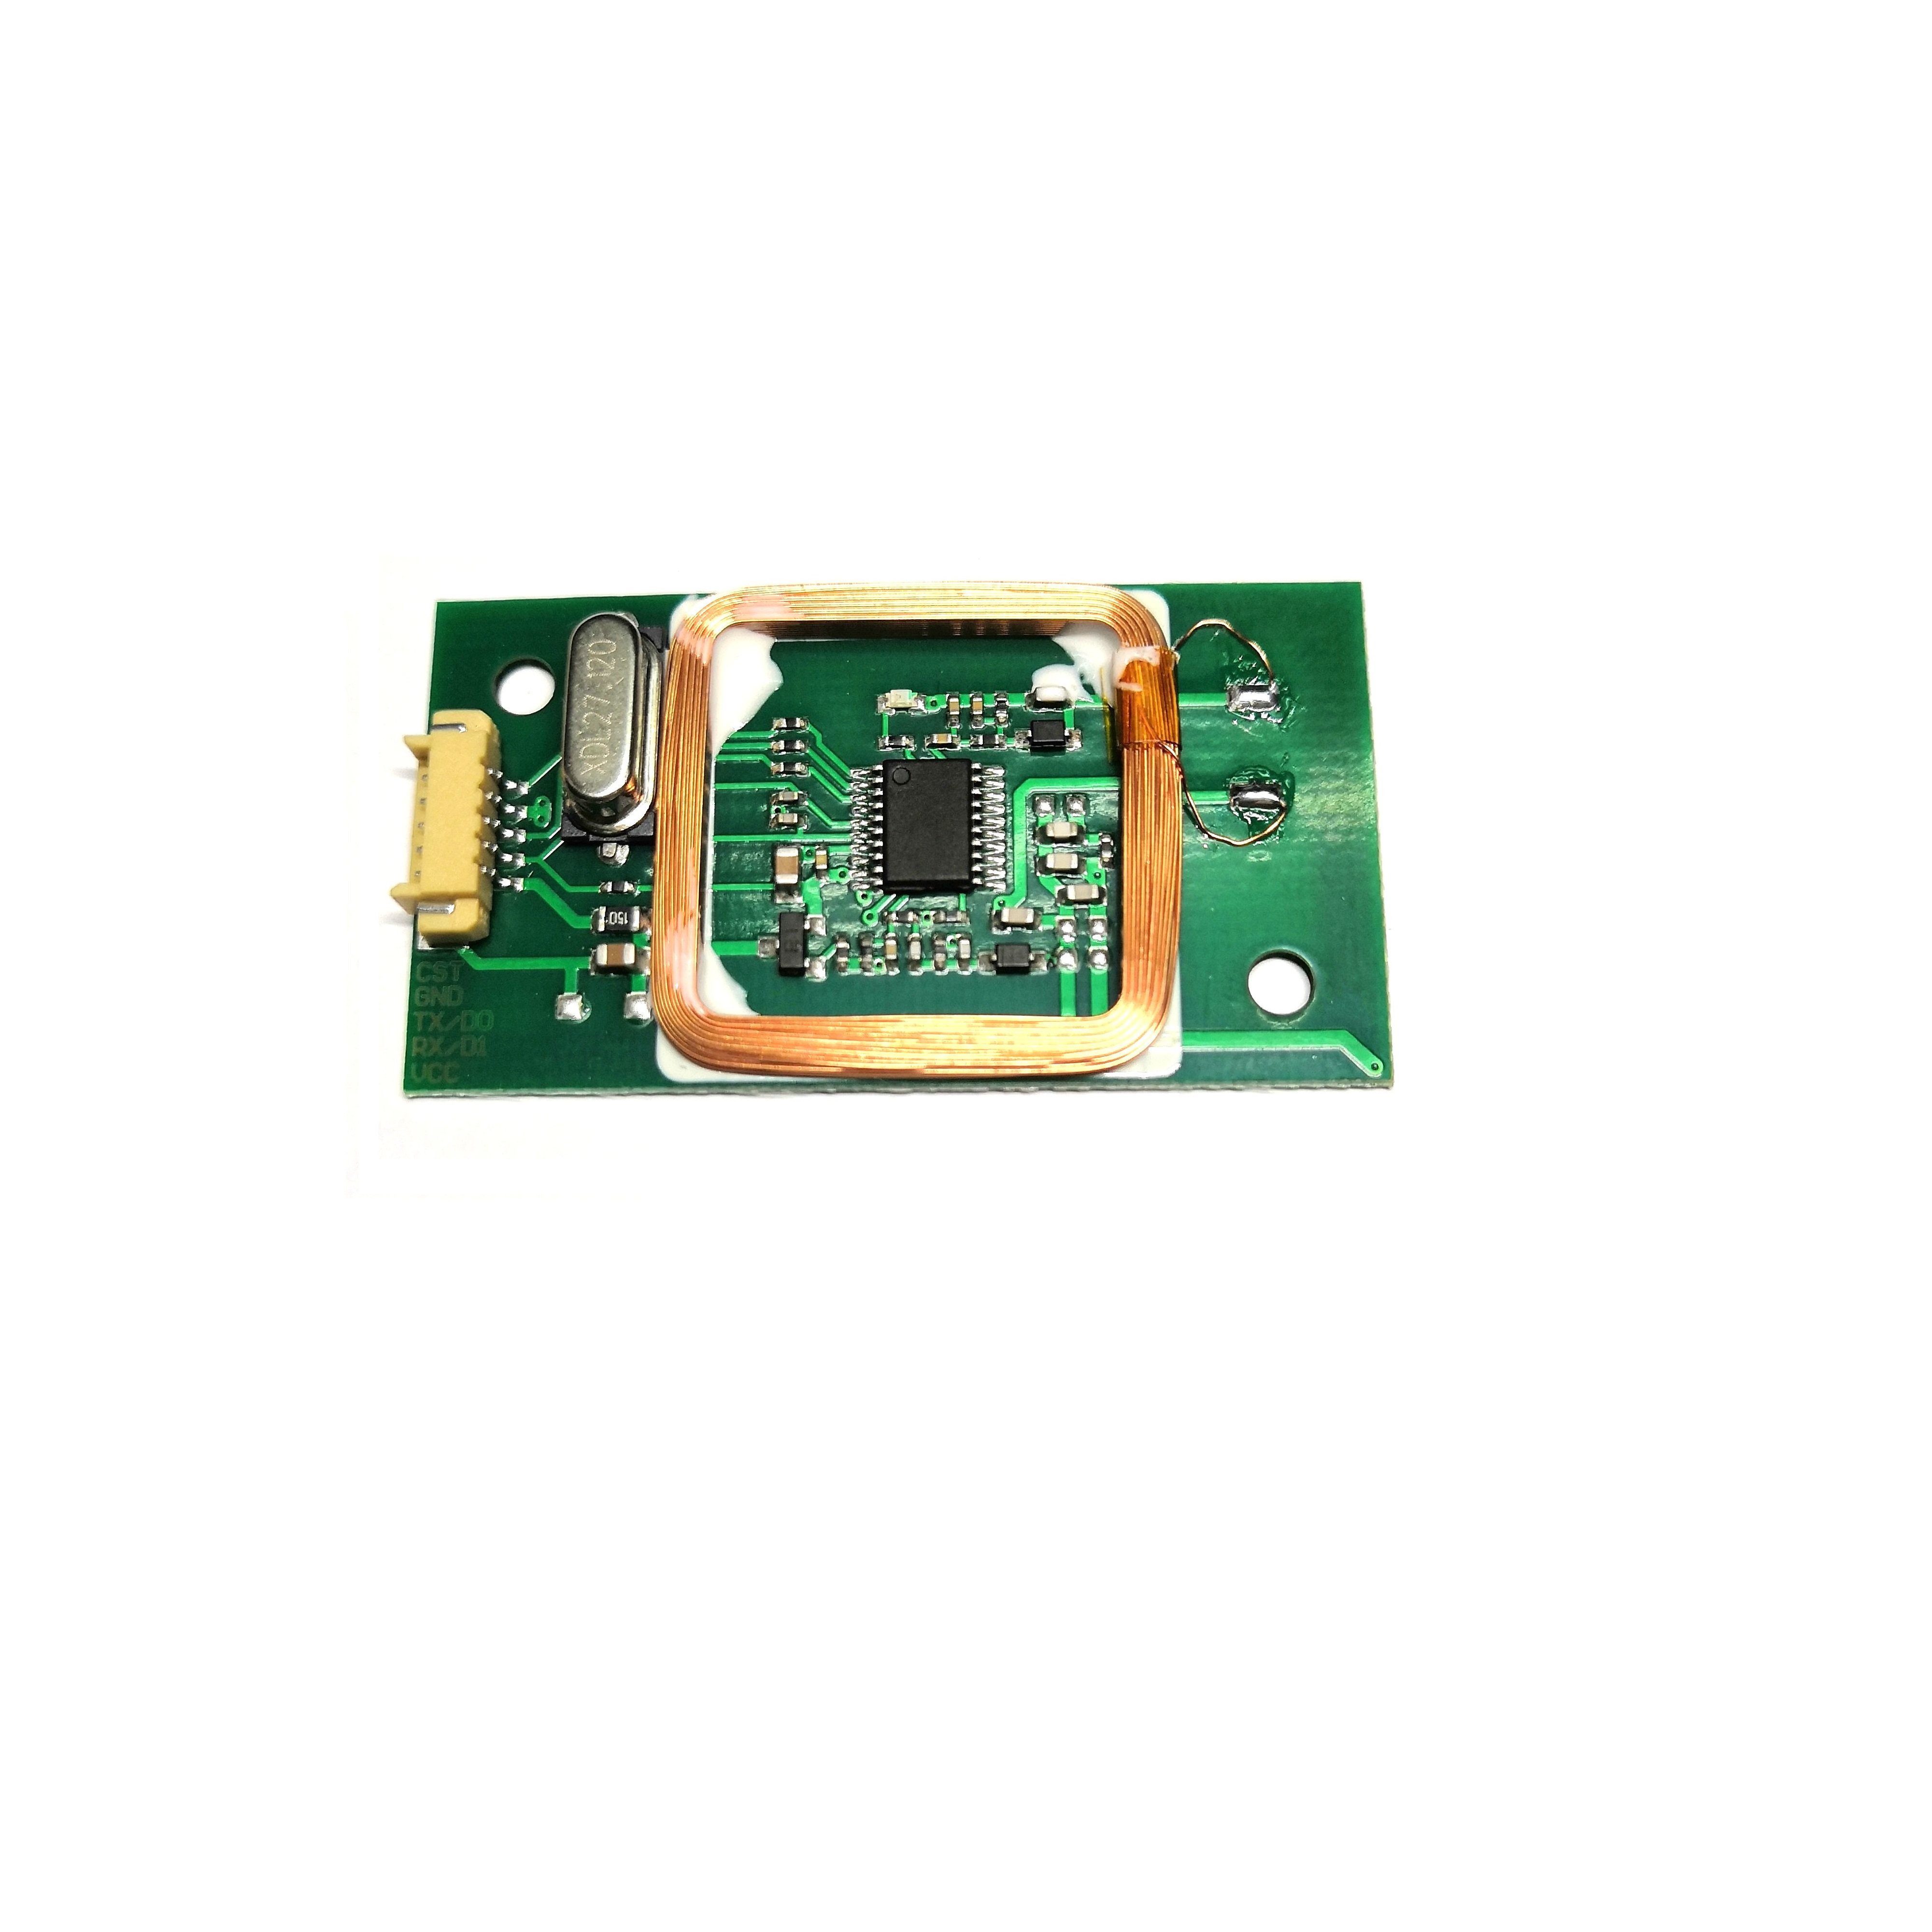 125Khz 13.56Mhz Double Frequency Embedded Card Reader Module Compatible With EM4100 MF 1K Classic